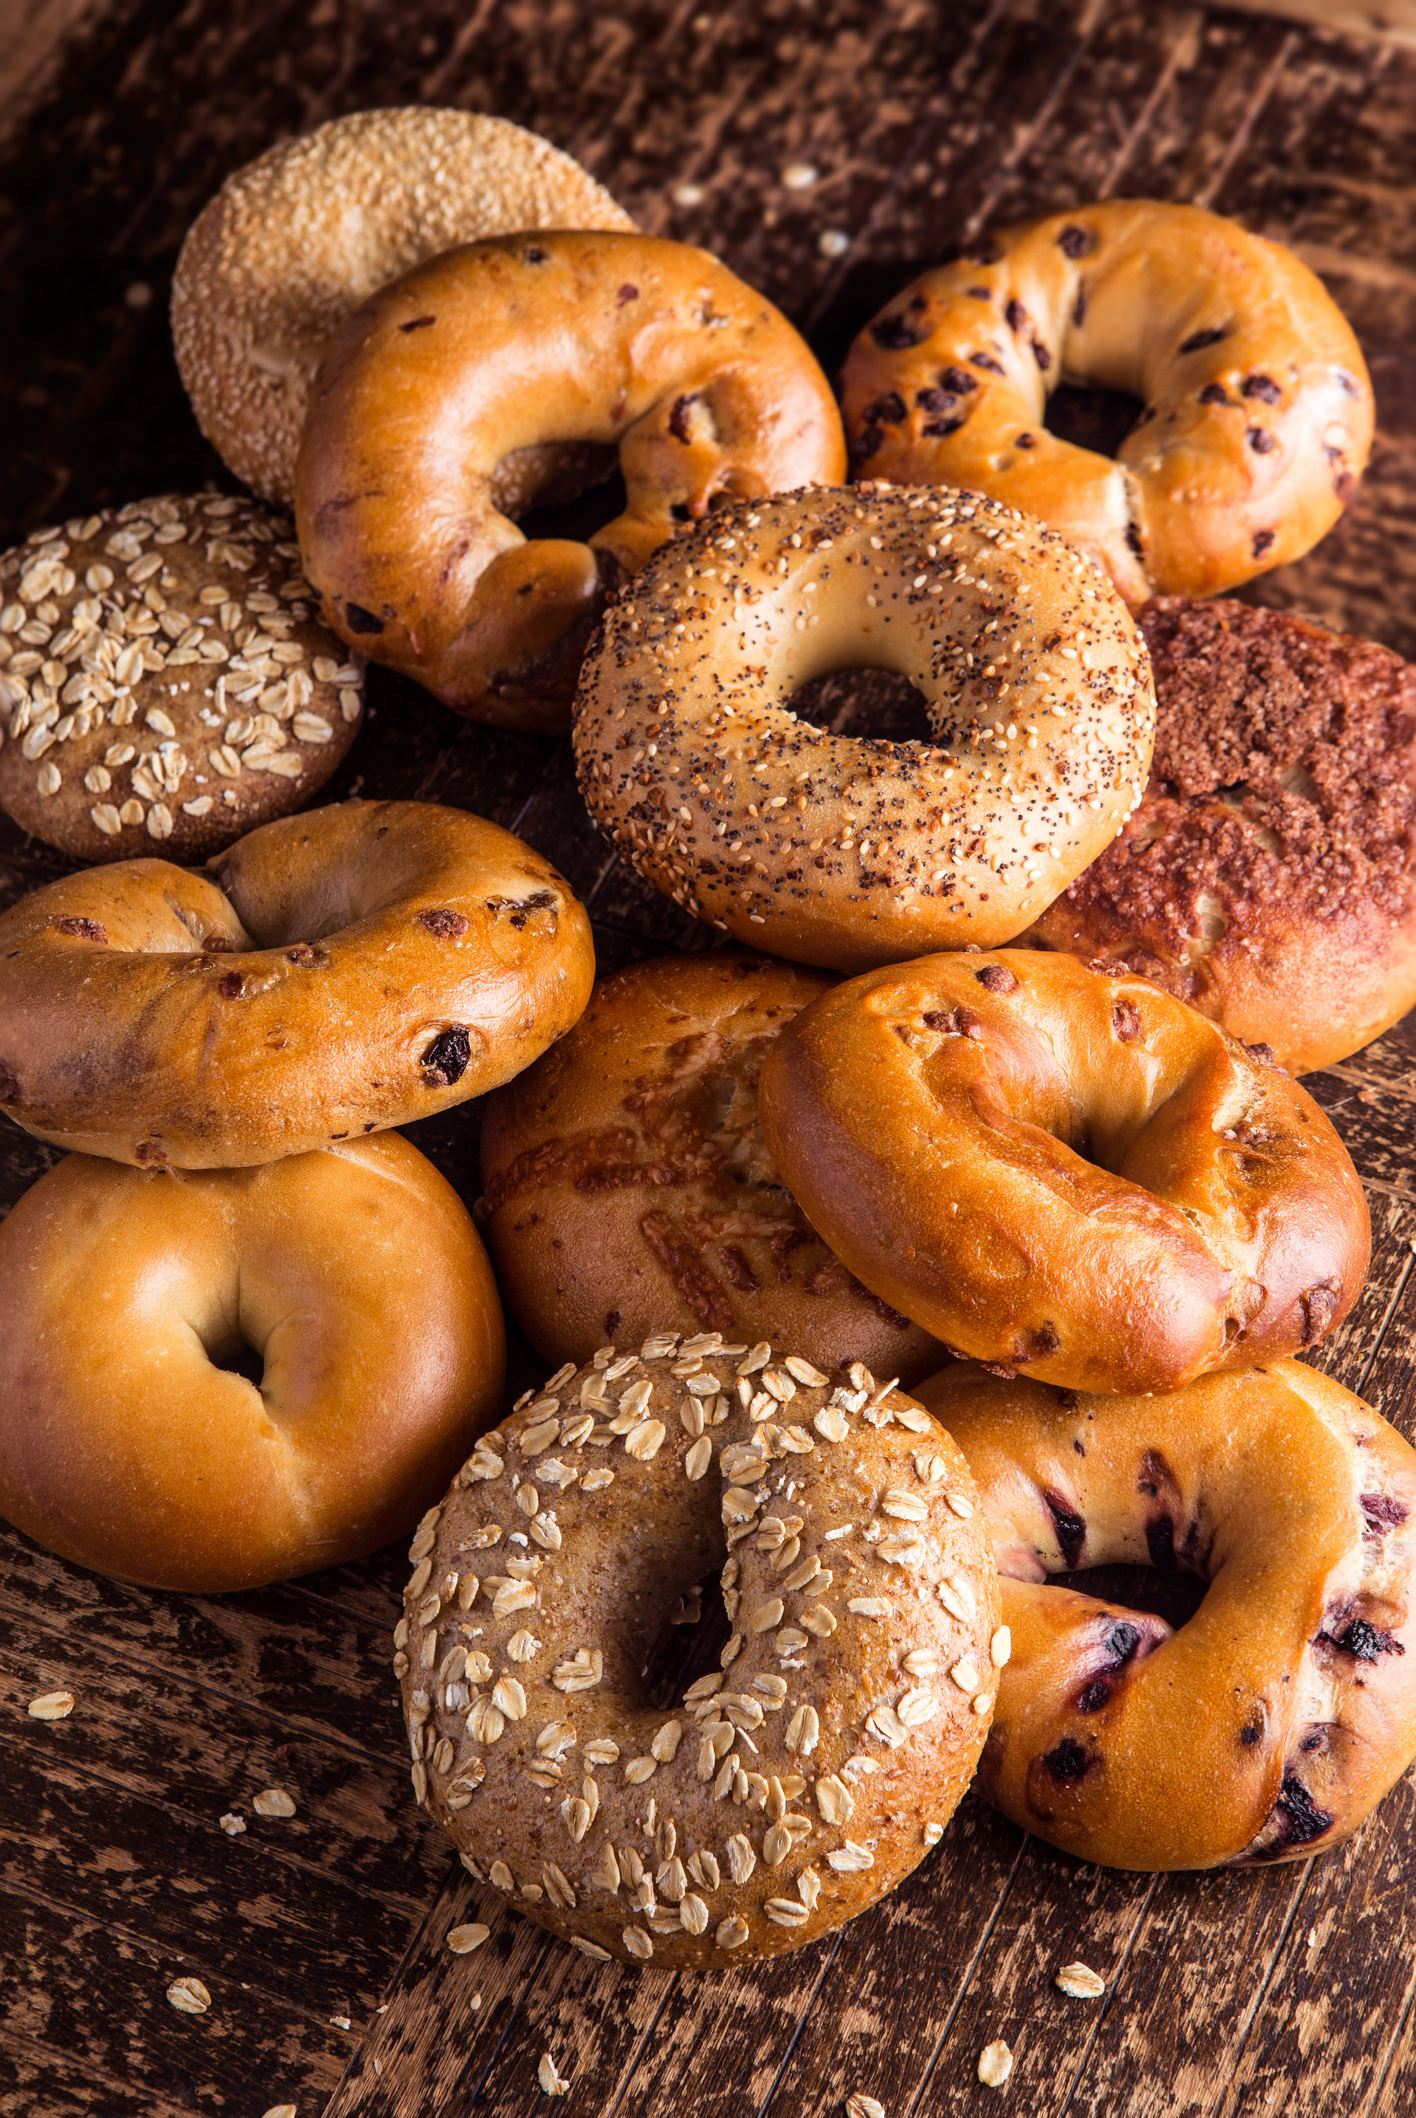 Bread Sliced Panera Bagels Out Of St Louis Cause Online Controversy